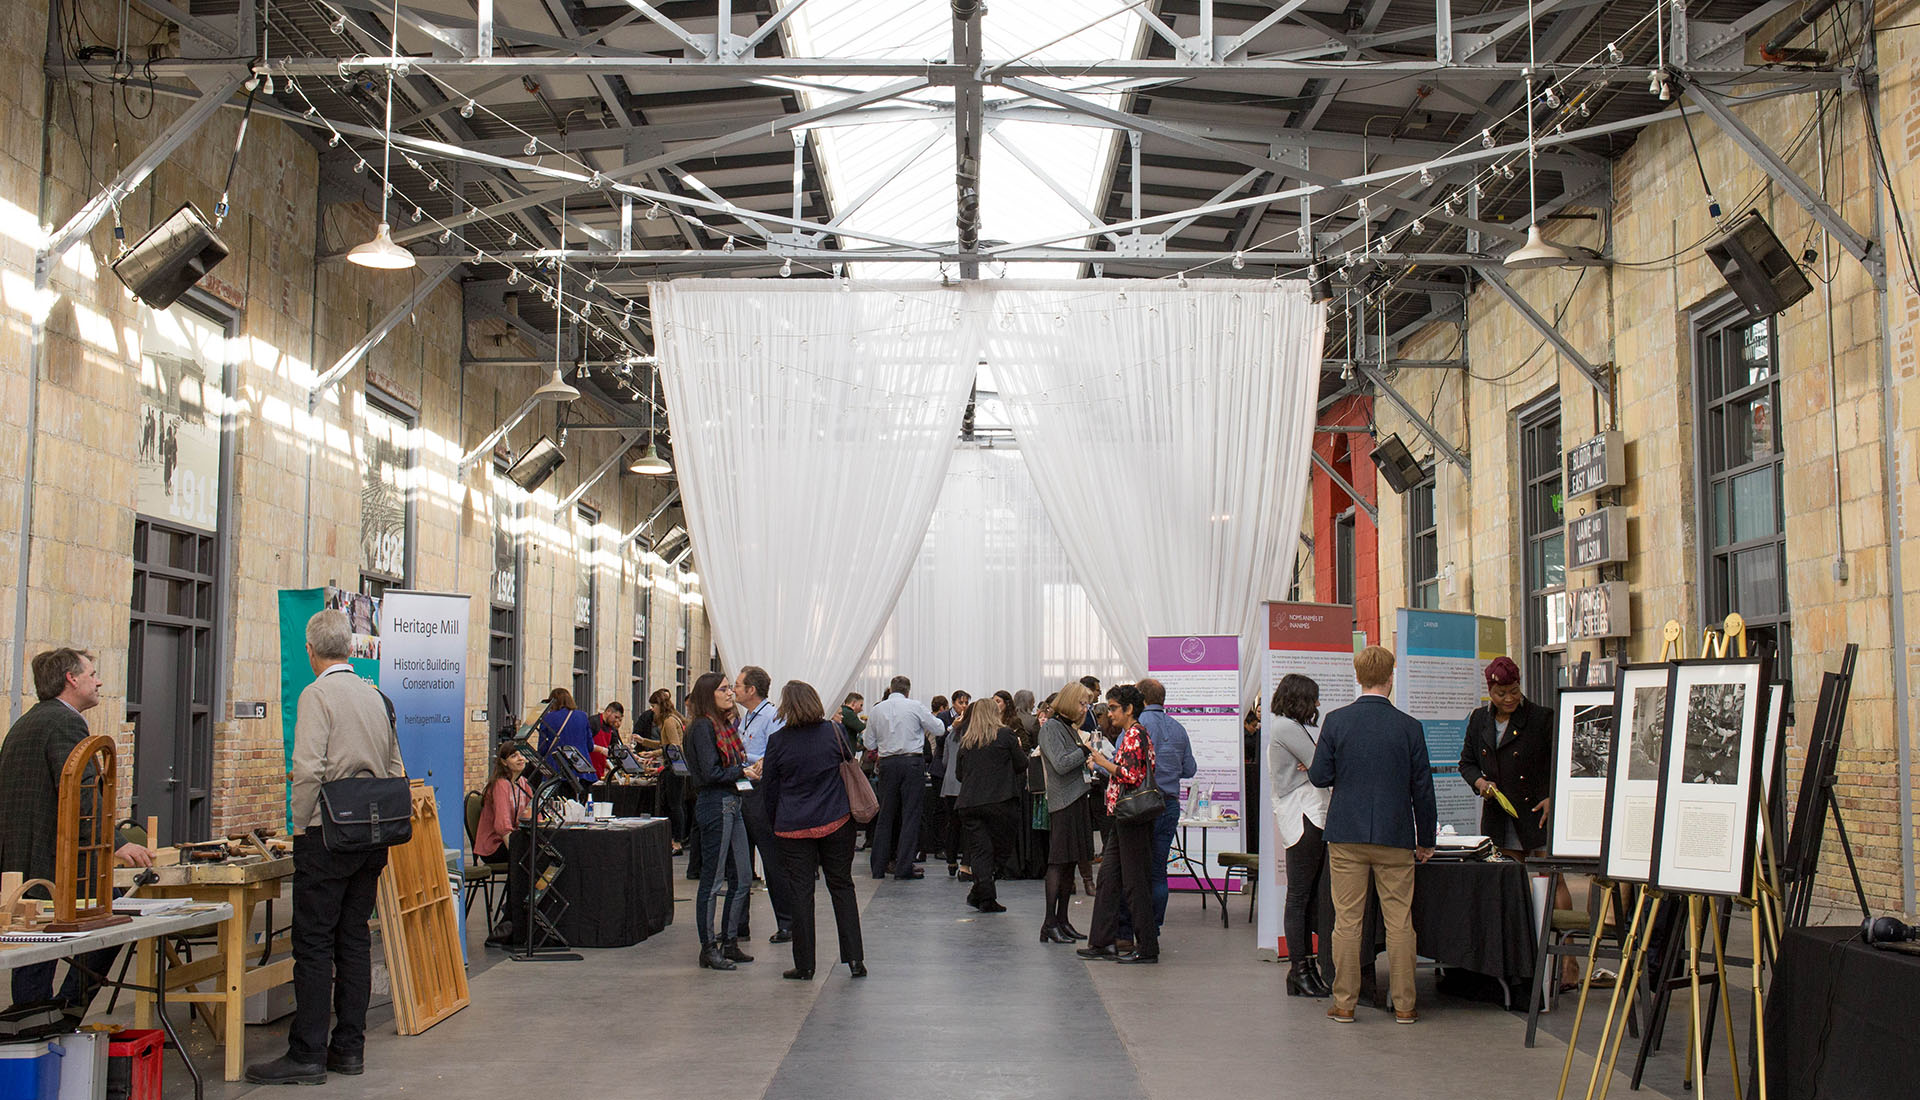 2017 Intangible Cultural Heritage Symposium at Toronto's Artscape Wychwood Barns